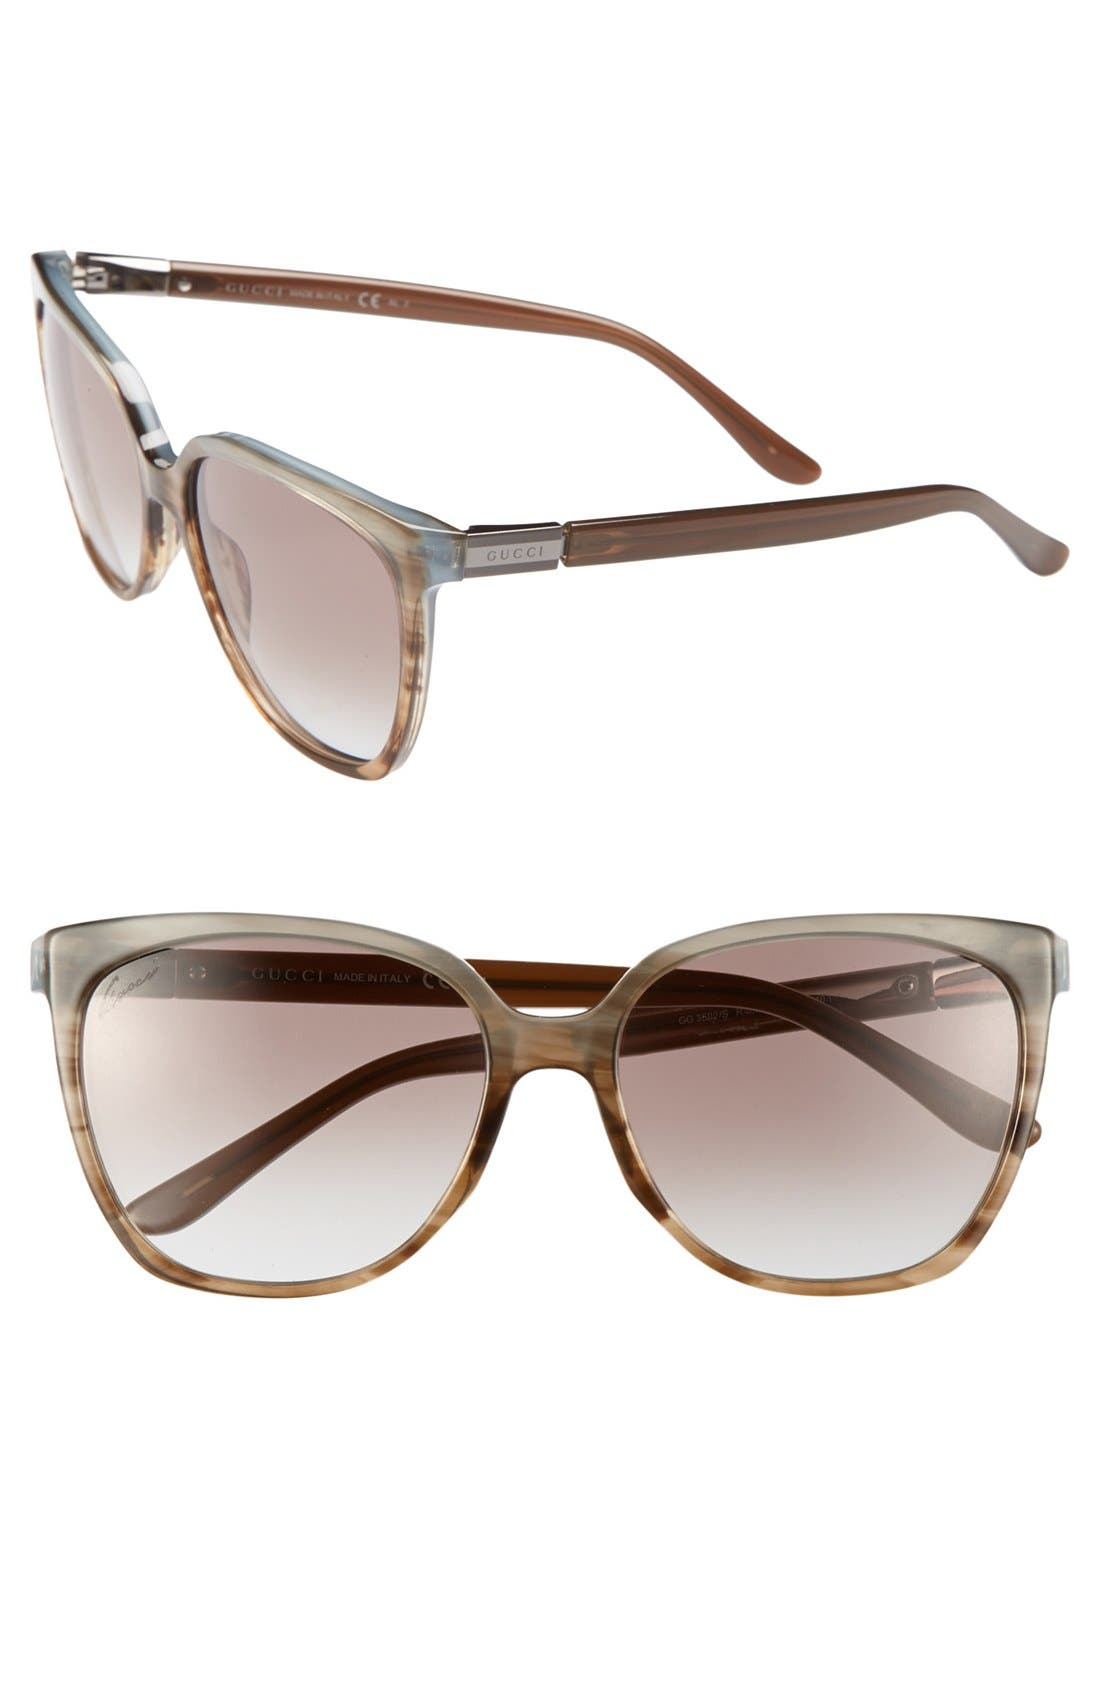 57mm Oversized Sunglasses,                             Main thumbnail 1, color,                             Brown Azure